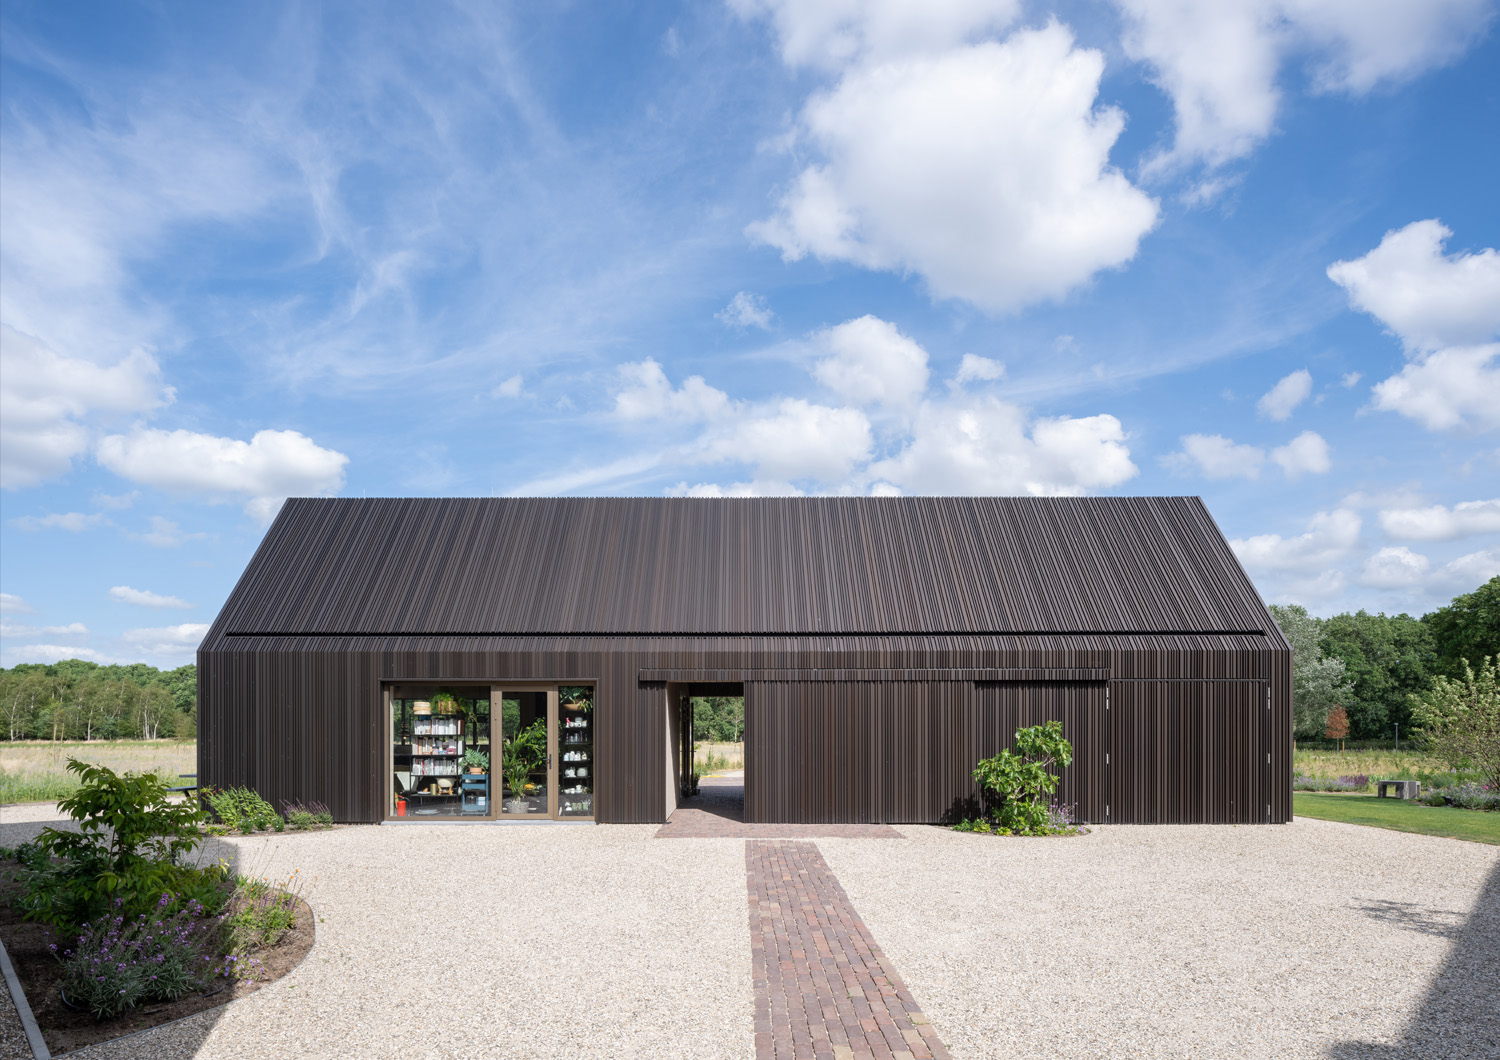 The other barn features a cooking studio where up to twenty people can participate in culinary classes, workshops and team-building activities led by the client. Ossip Architectuurfotografie